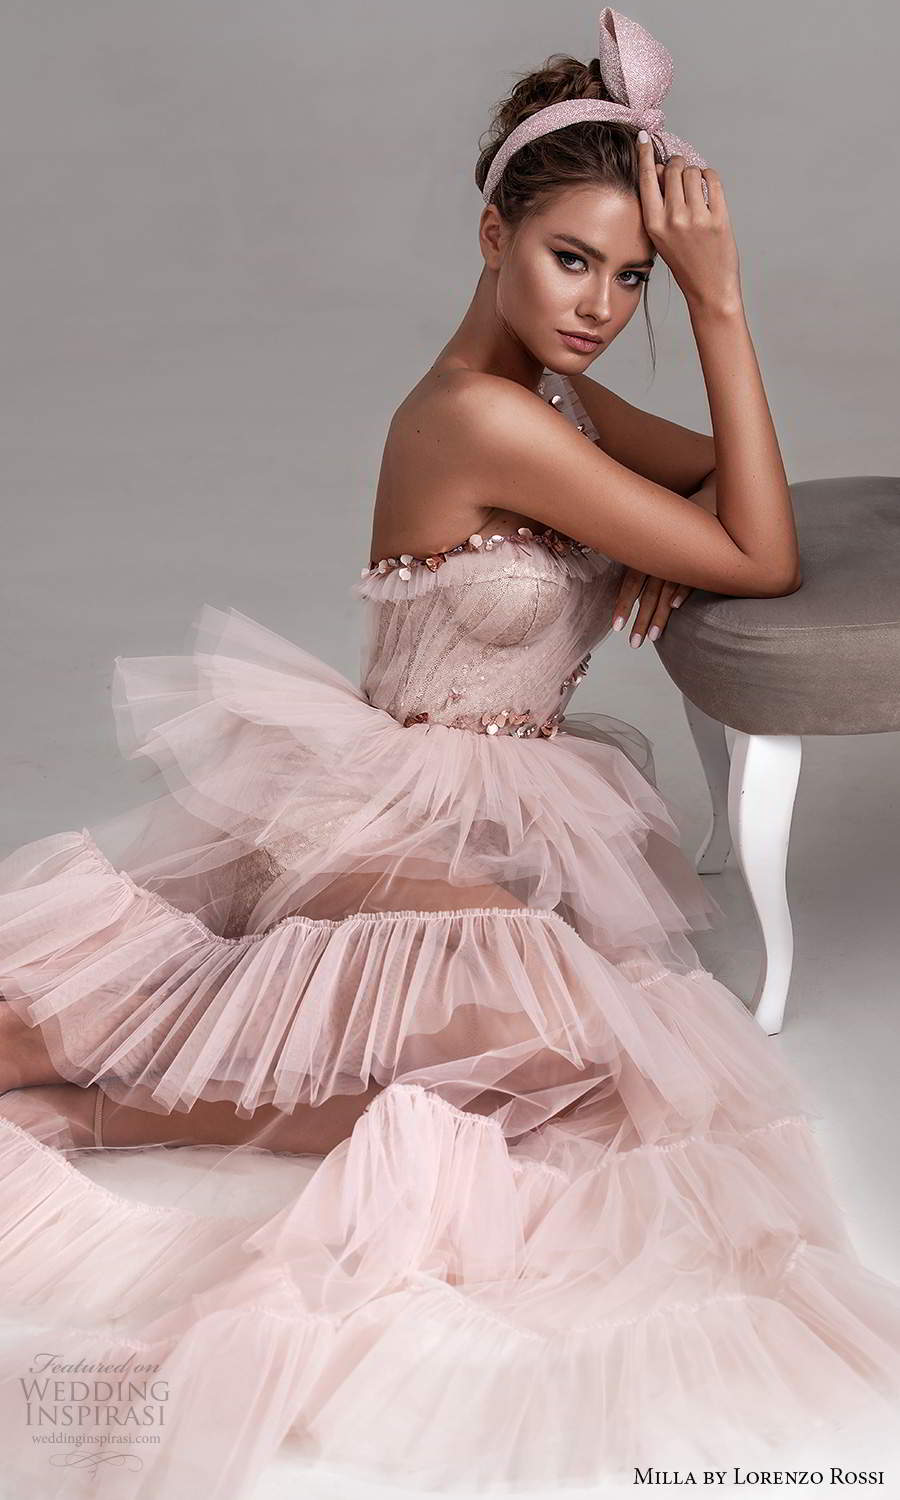 milla by lorenzo rossi 2020 rtw one shoulder straps sweetheart neckline ruched bodice embellished a line dress ruffle tier skirt pink blush (21) zsv